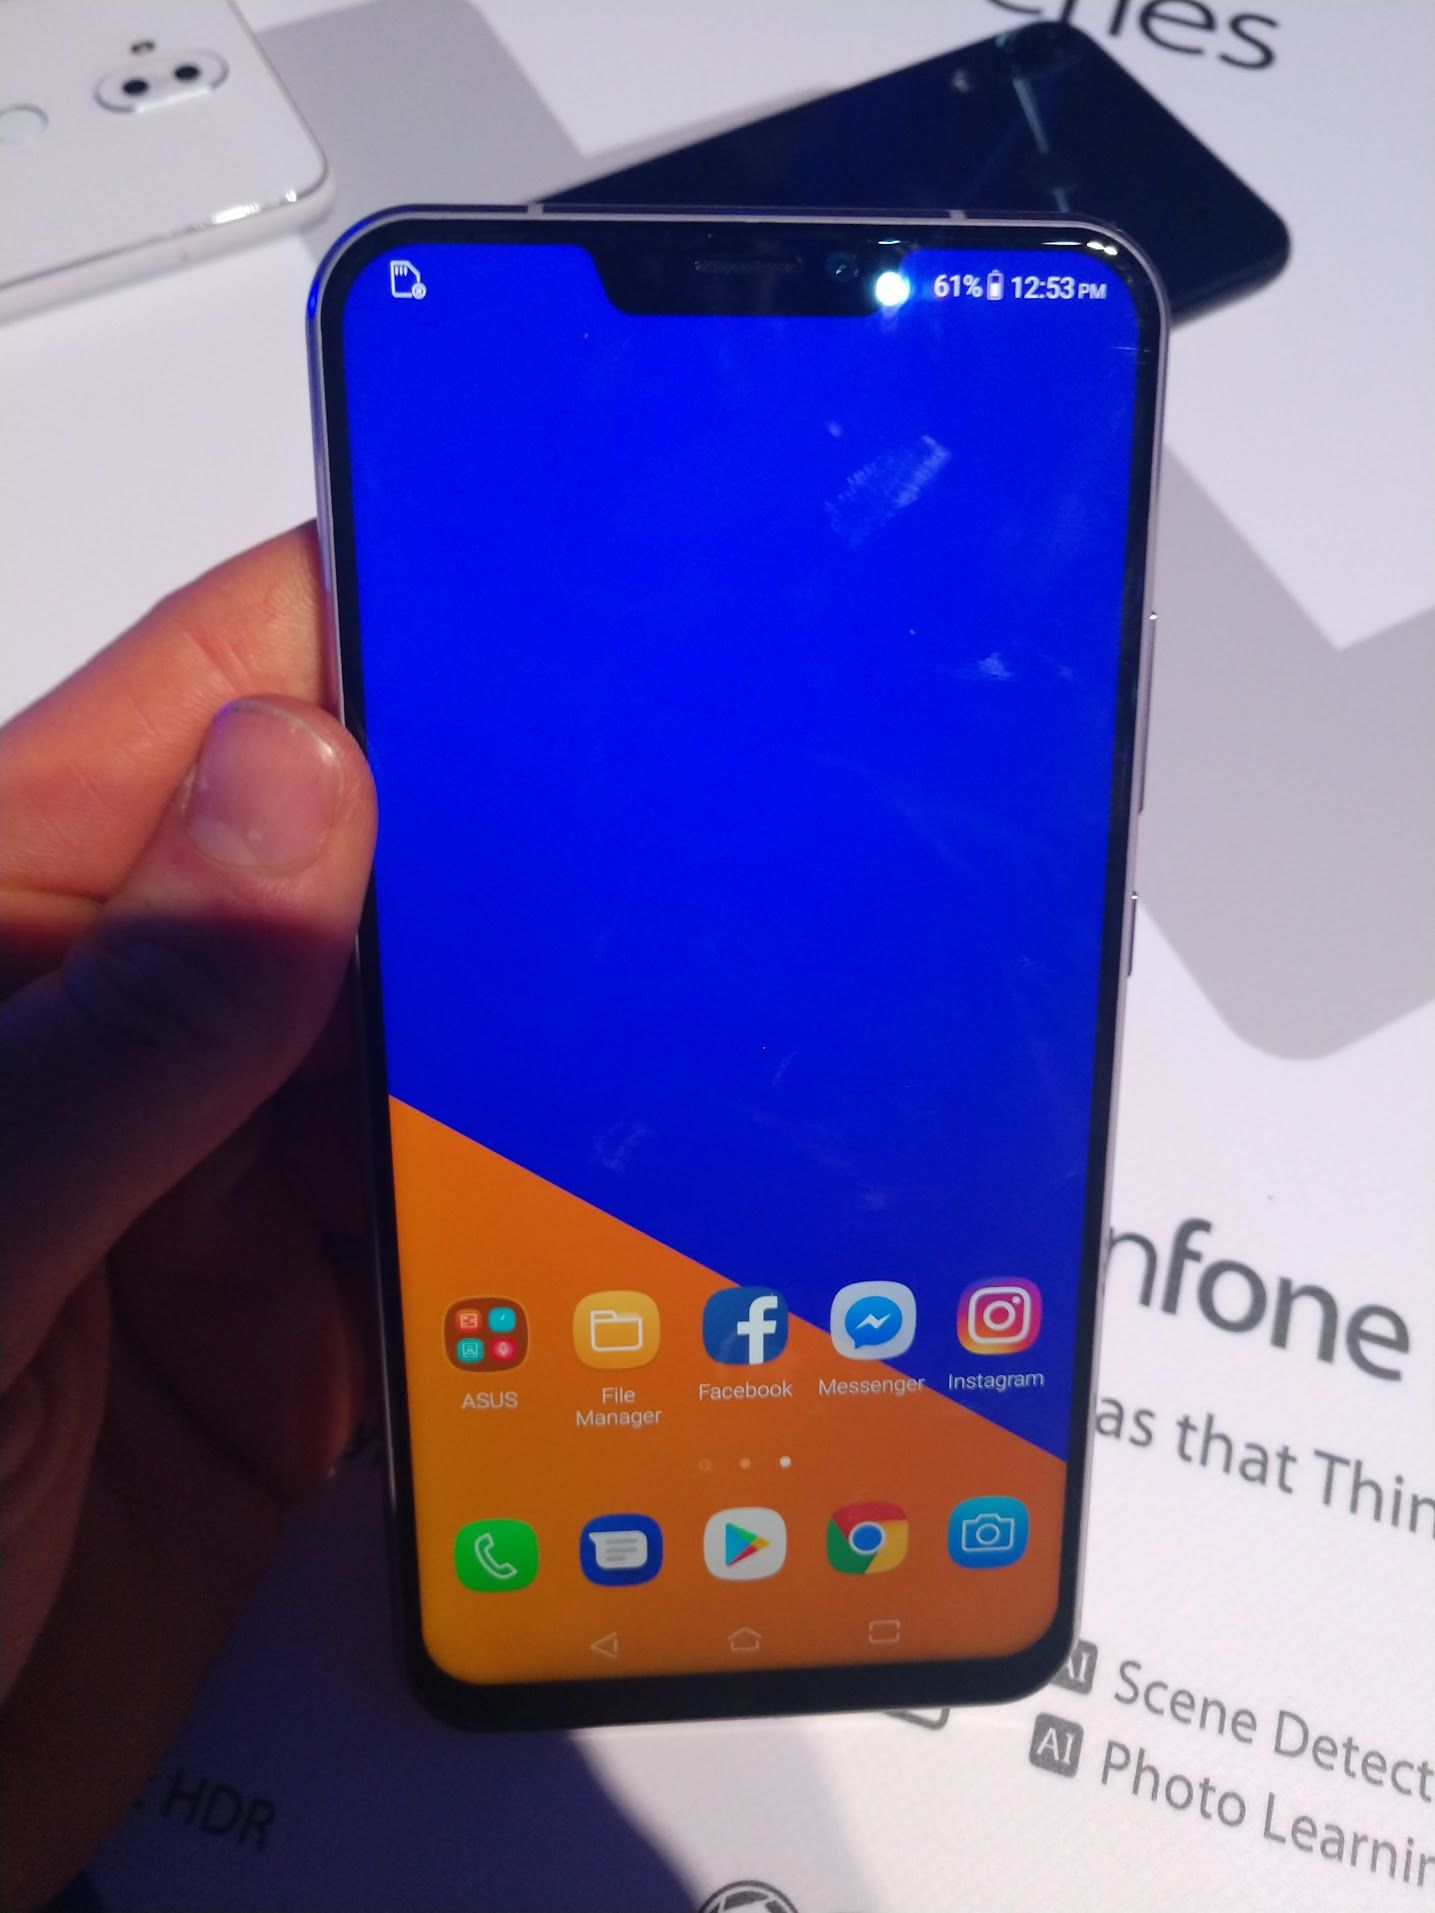 Highlights Of Mwc 2018 Asus Zenfone Asus Samsung